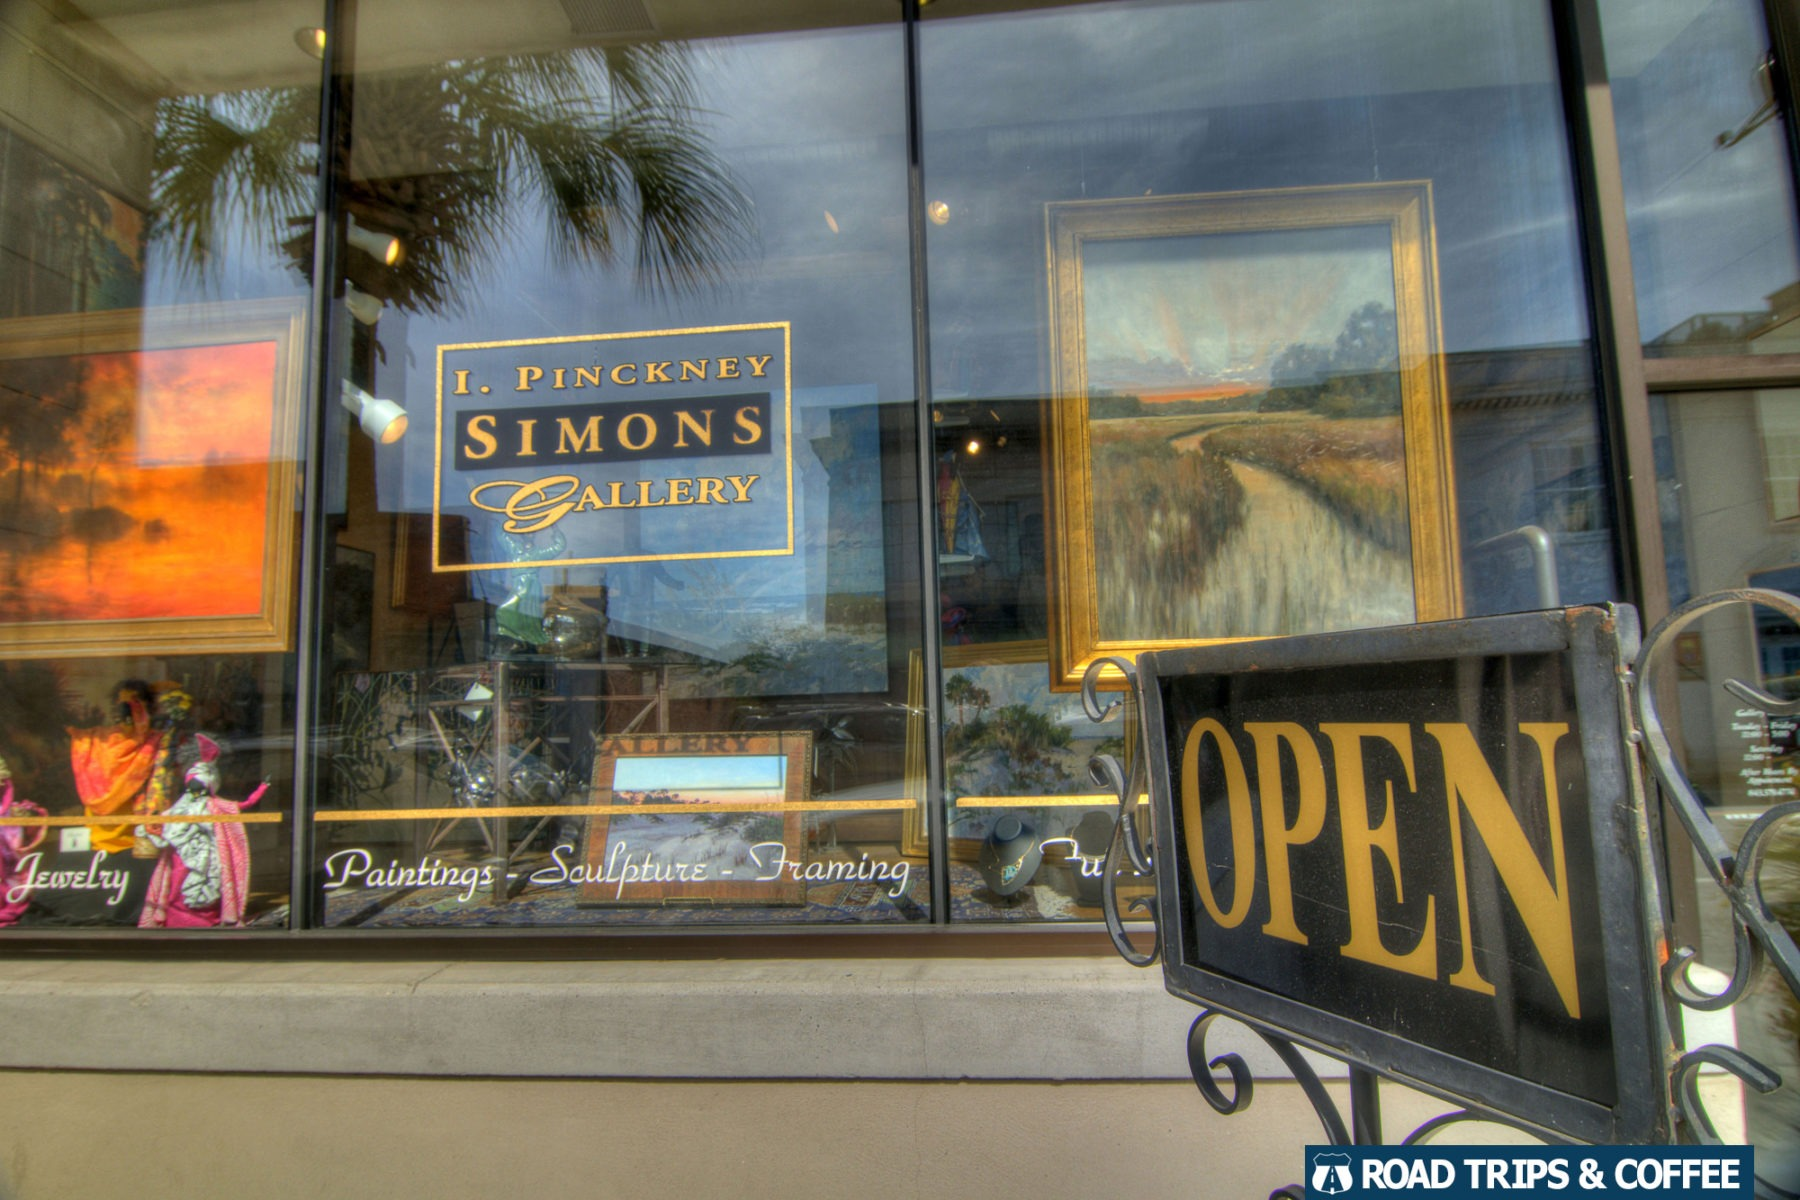 Artwork on display in large glass windows at the I. Pinckney Simons Gallery in Beaufort, South Carolina